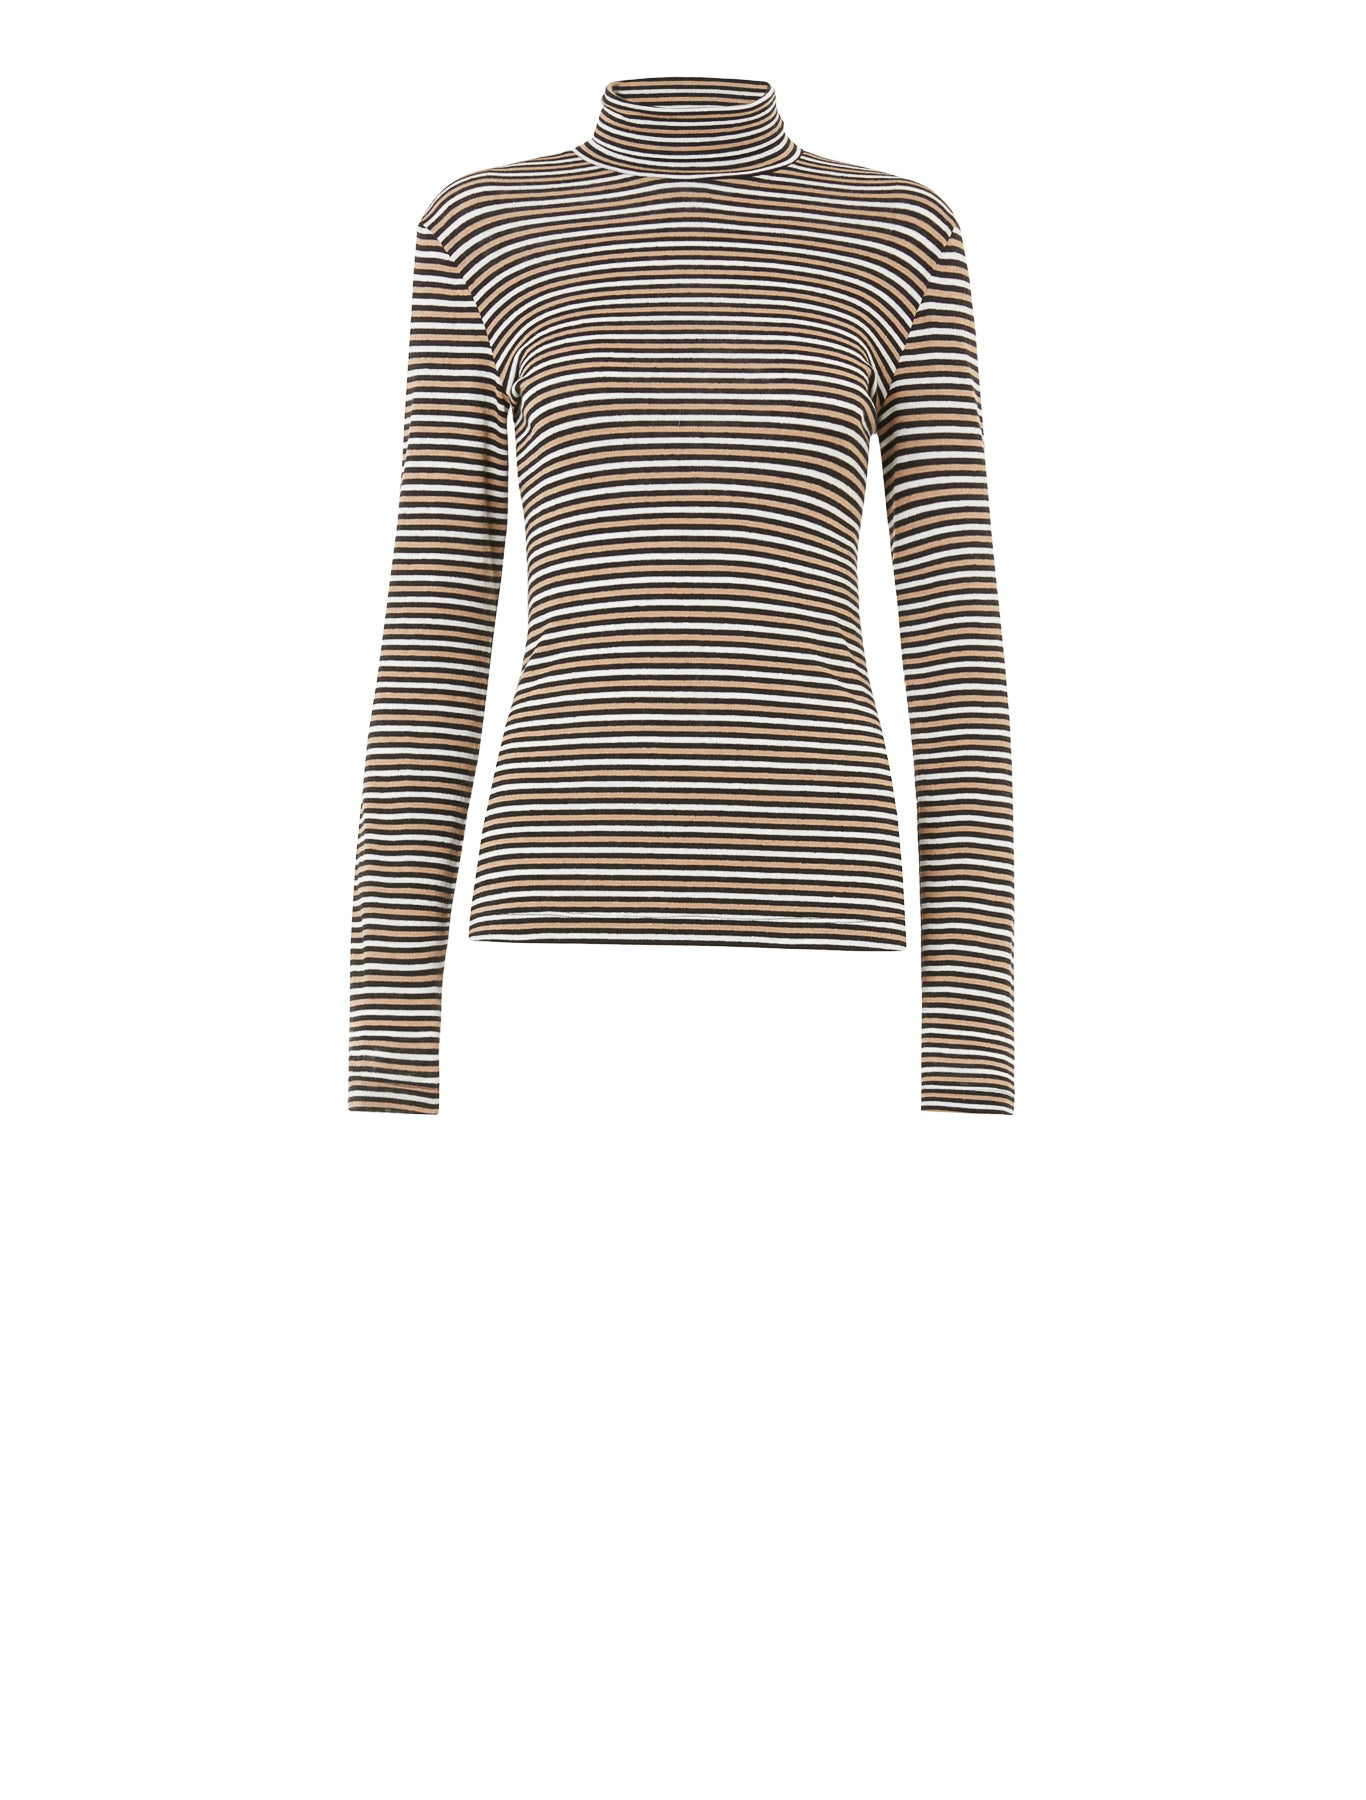 Taxi Turtleneck in Stripes